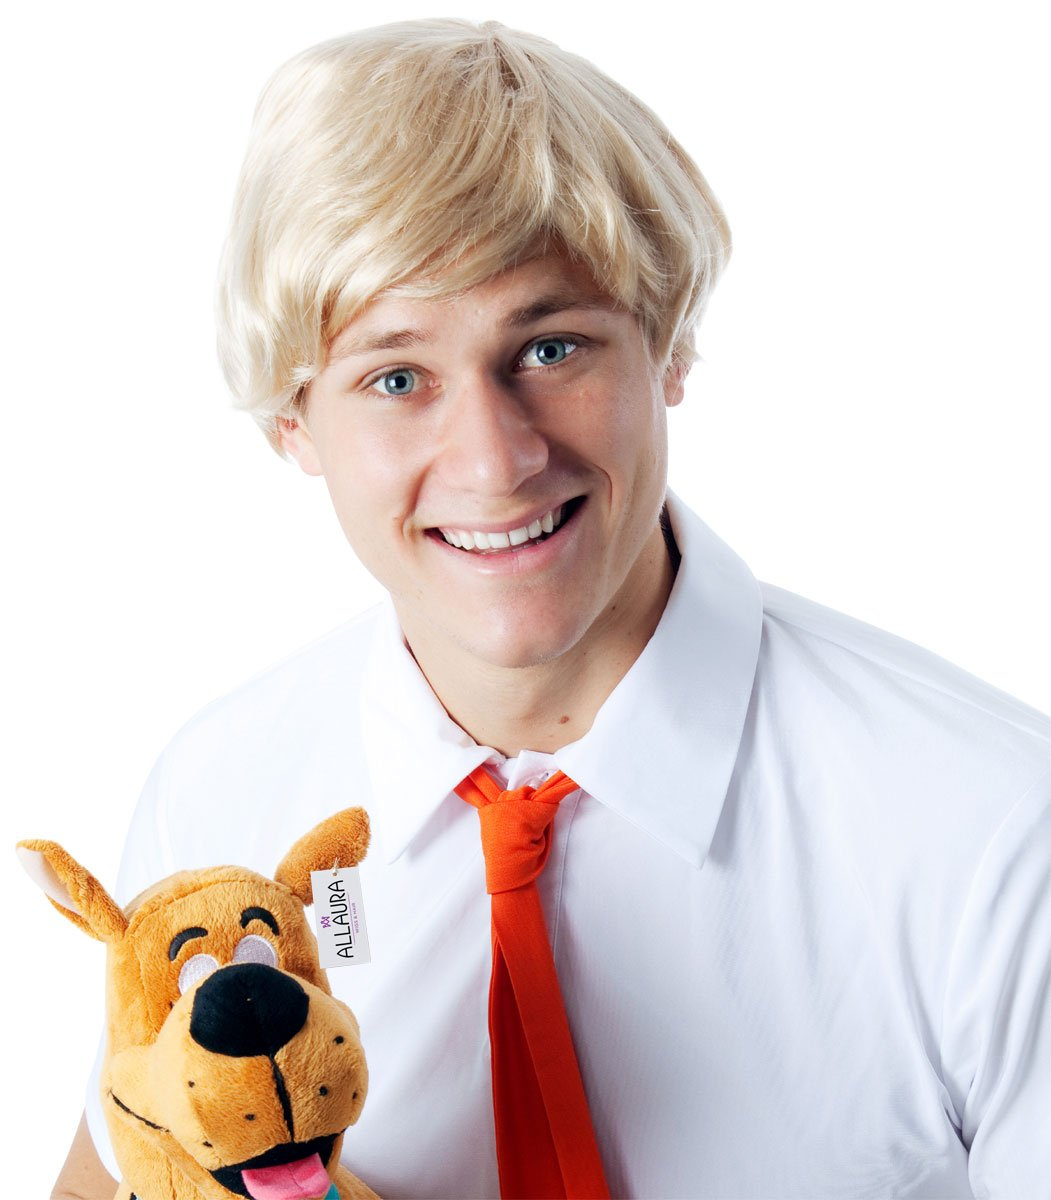 Short Blonde Wig for Men - Fred Scooby Doo Andy Warhol Draco Malfoy Costume Wigs by ALLAURA (Image #2)